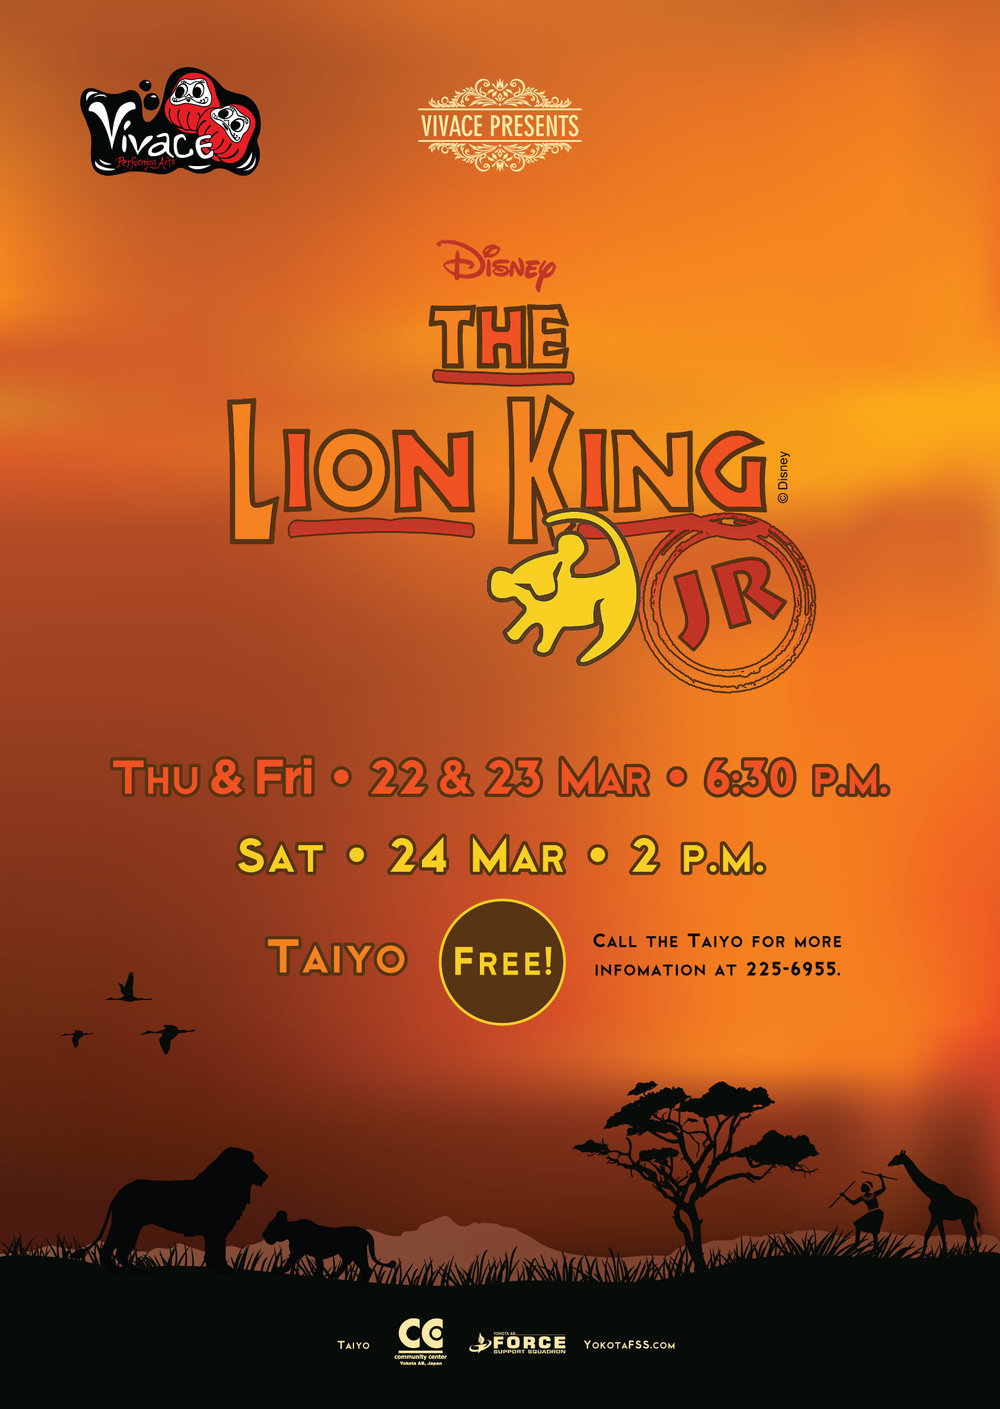 WO712-Vivace-Lion-King-jr (2).jpg